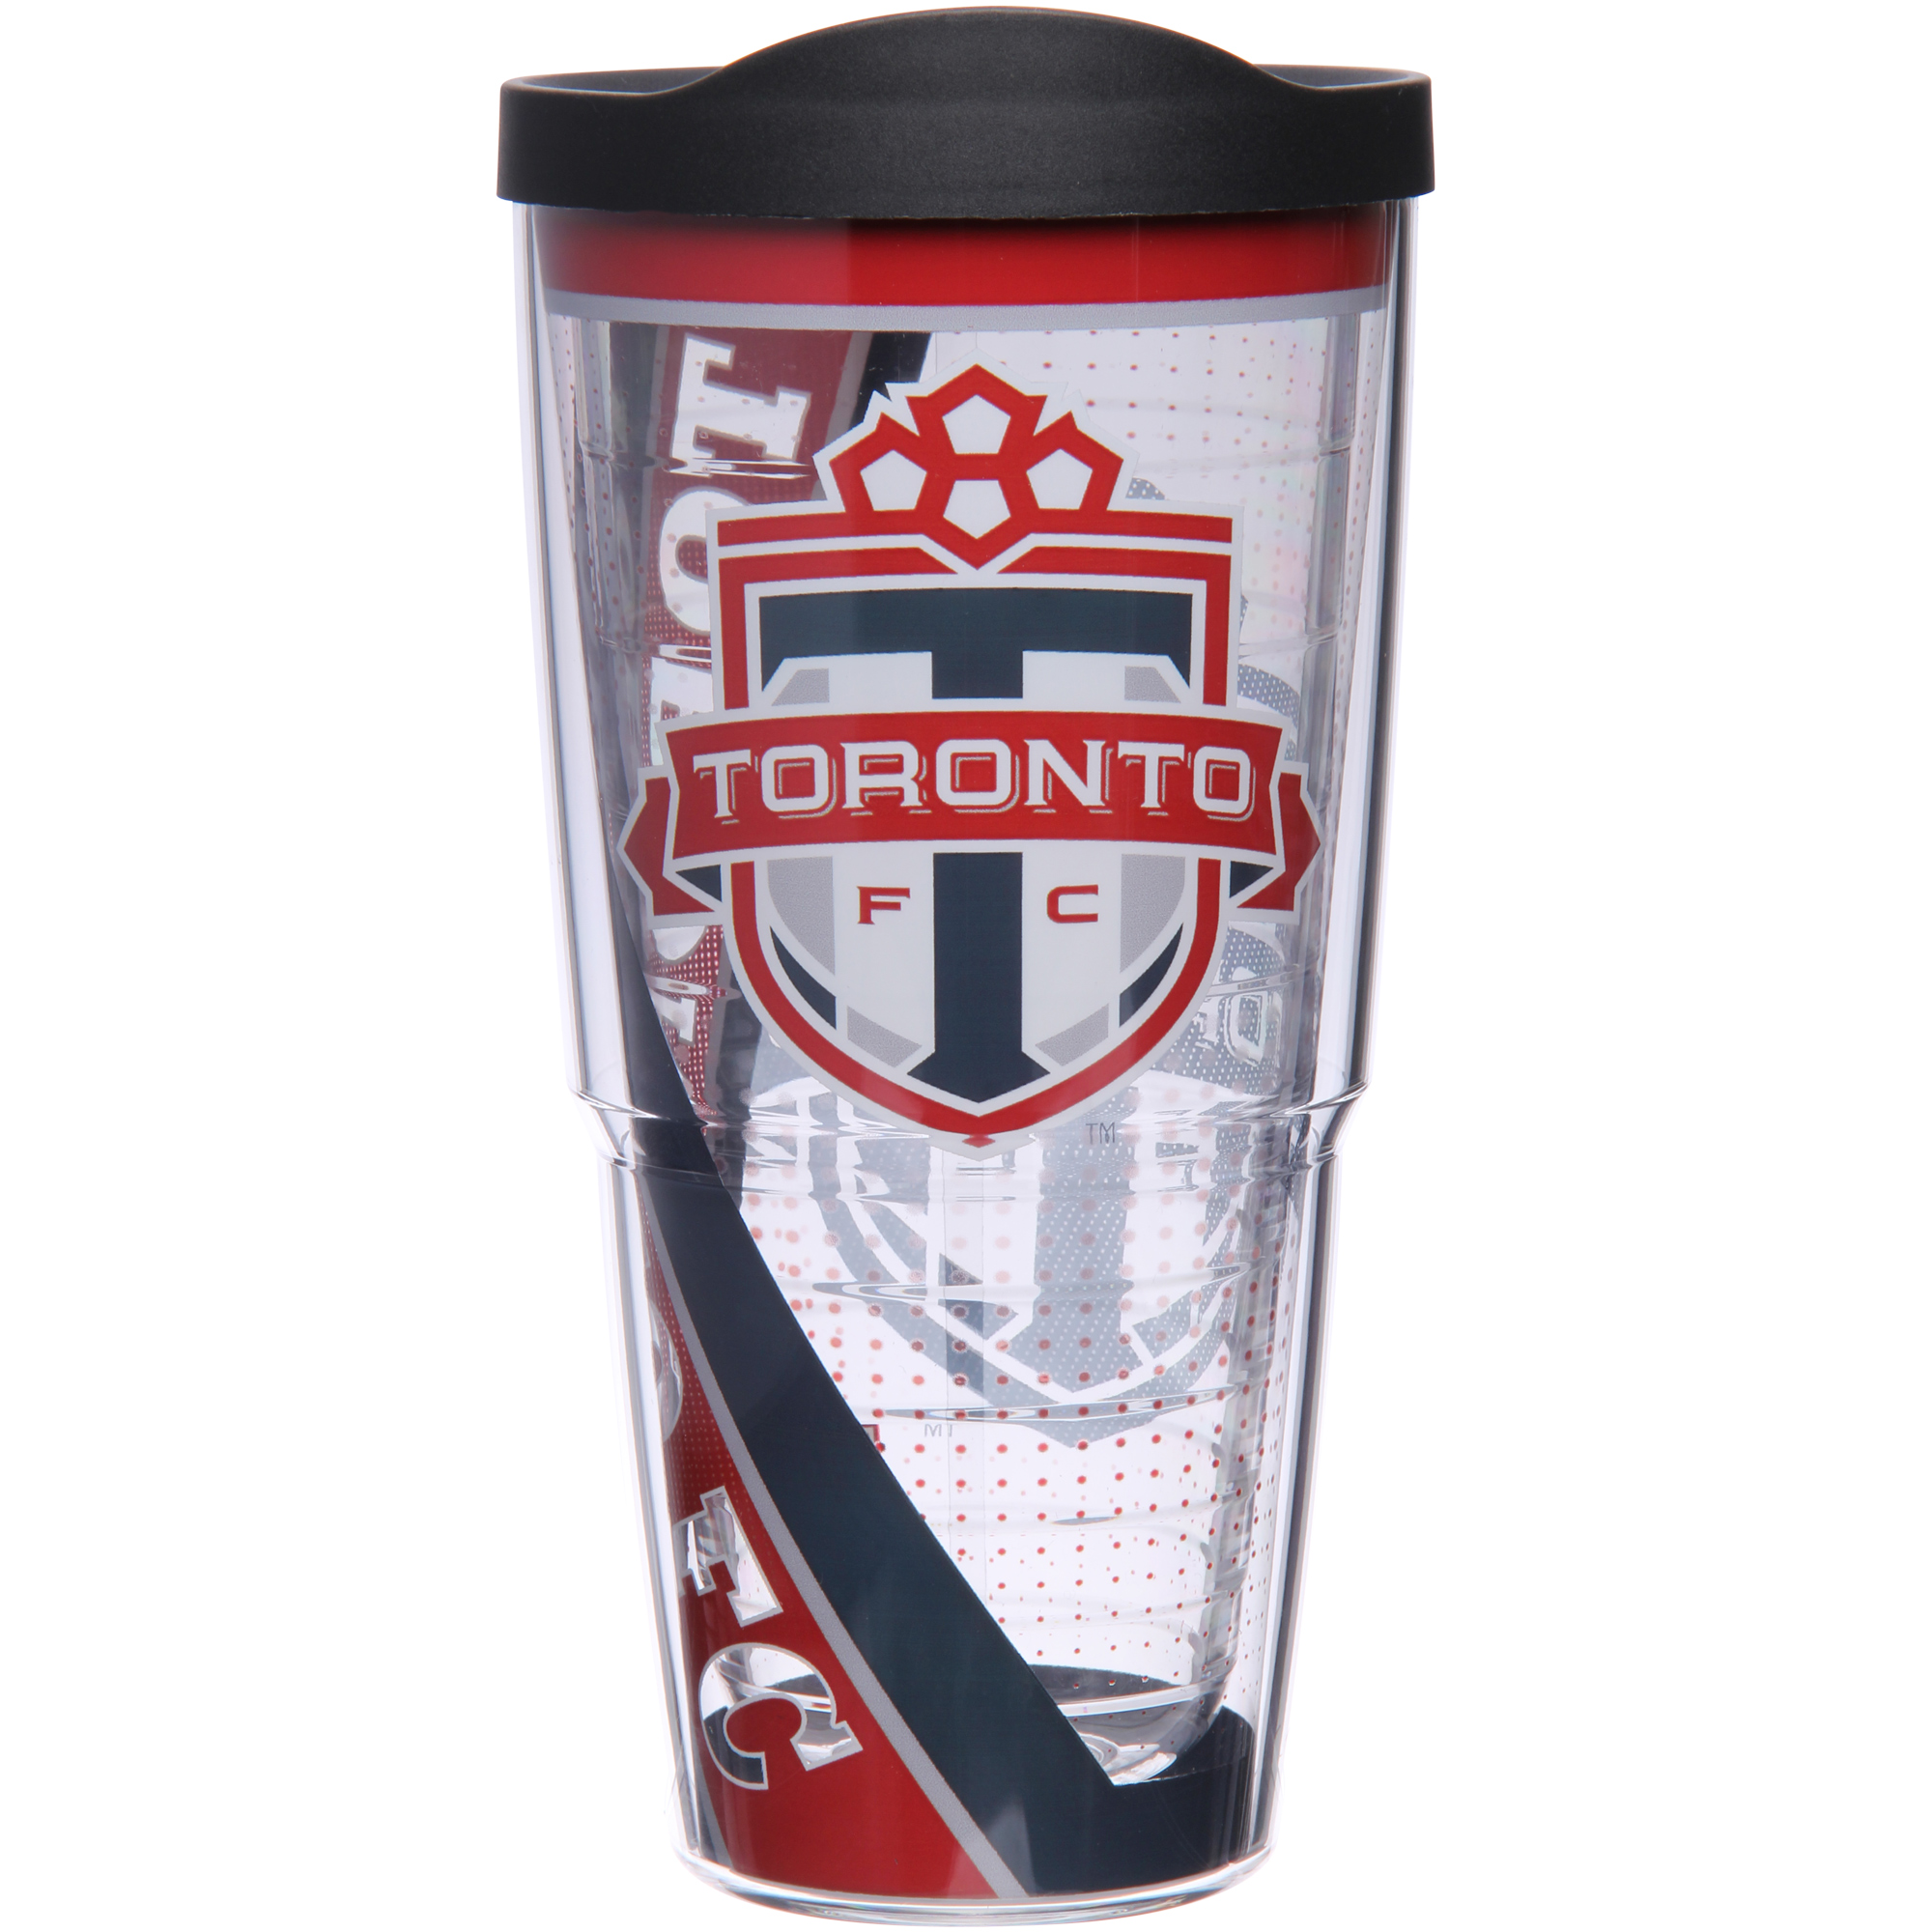 Toronto FC Tervis 24oz. Tumbler with Lid - Clear - No Size